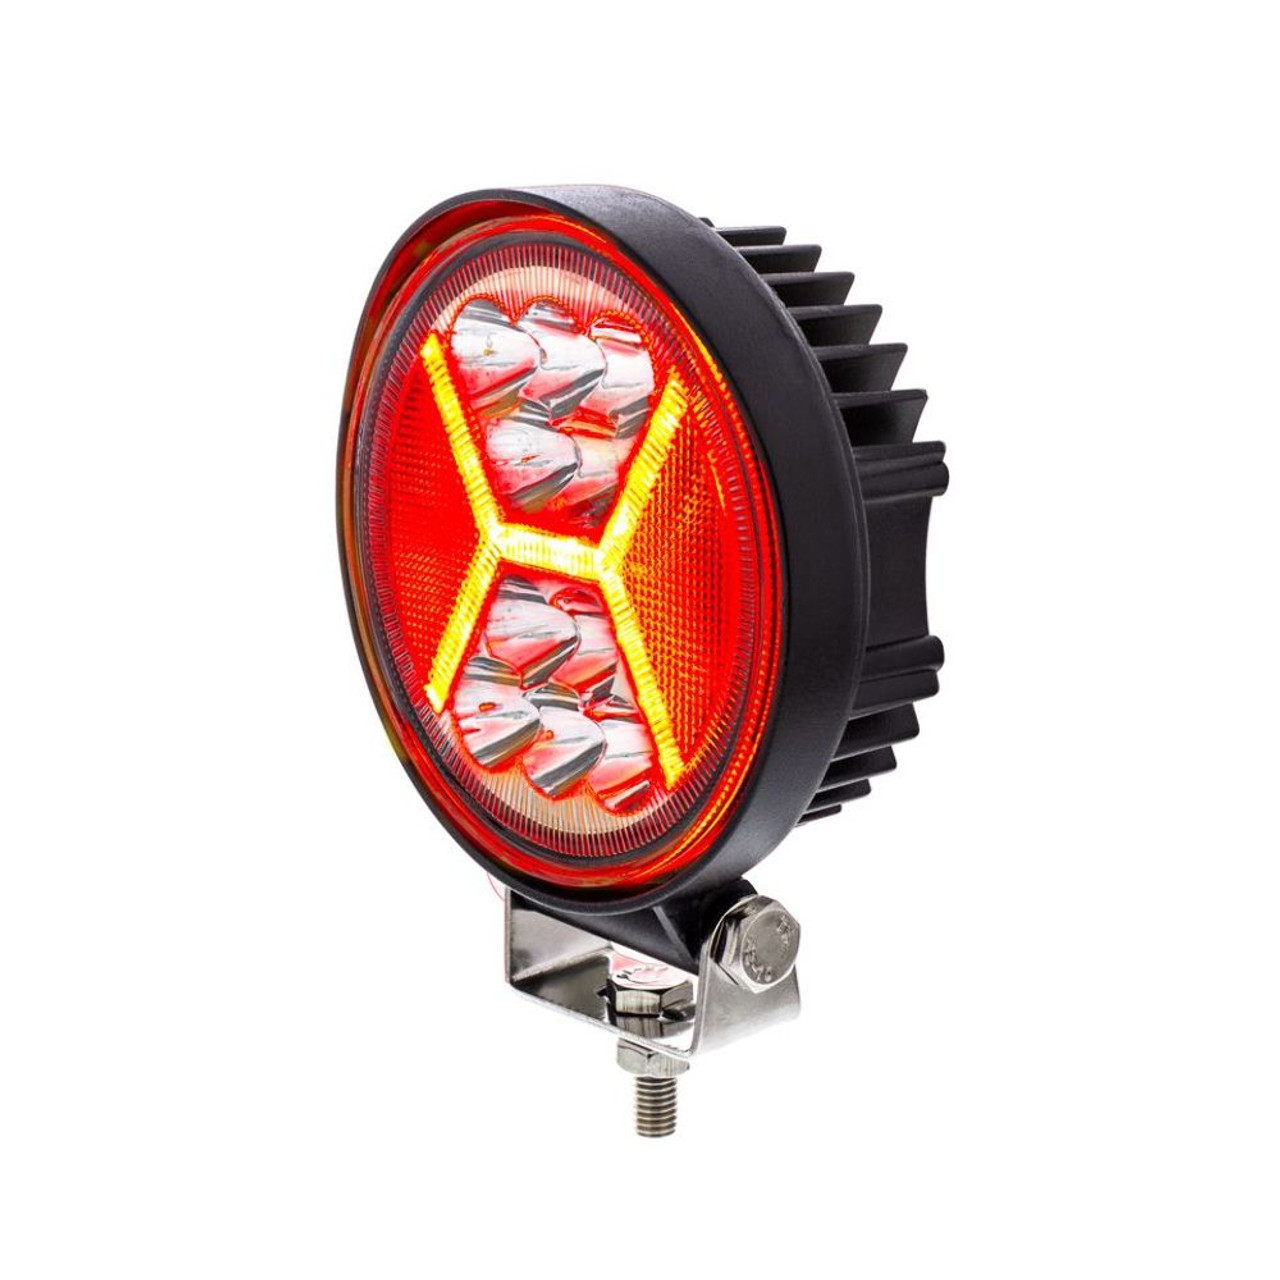 "4.5"" 24 High Power Led Work Light With ""X"" Red Light Guide, 5200 Lumens, IP67"